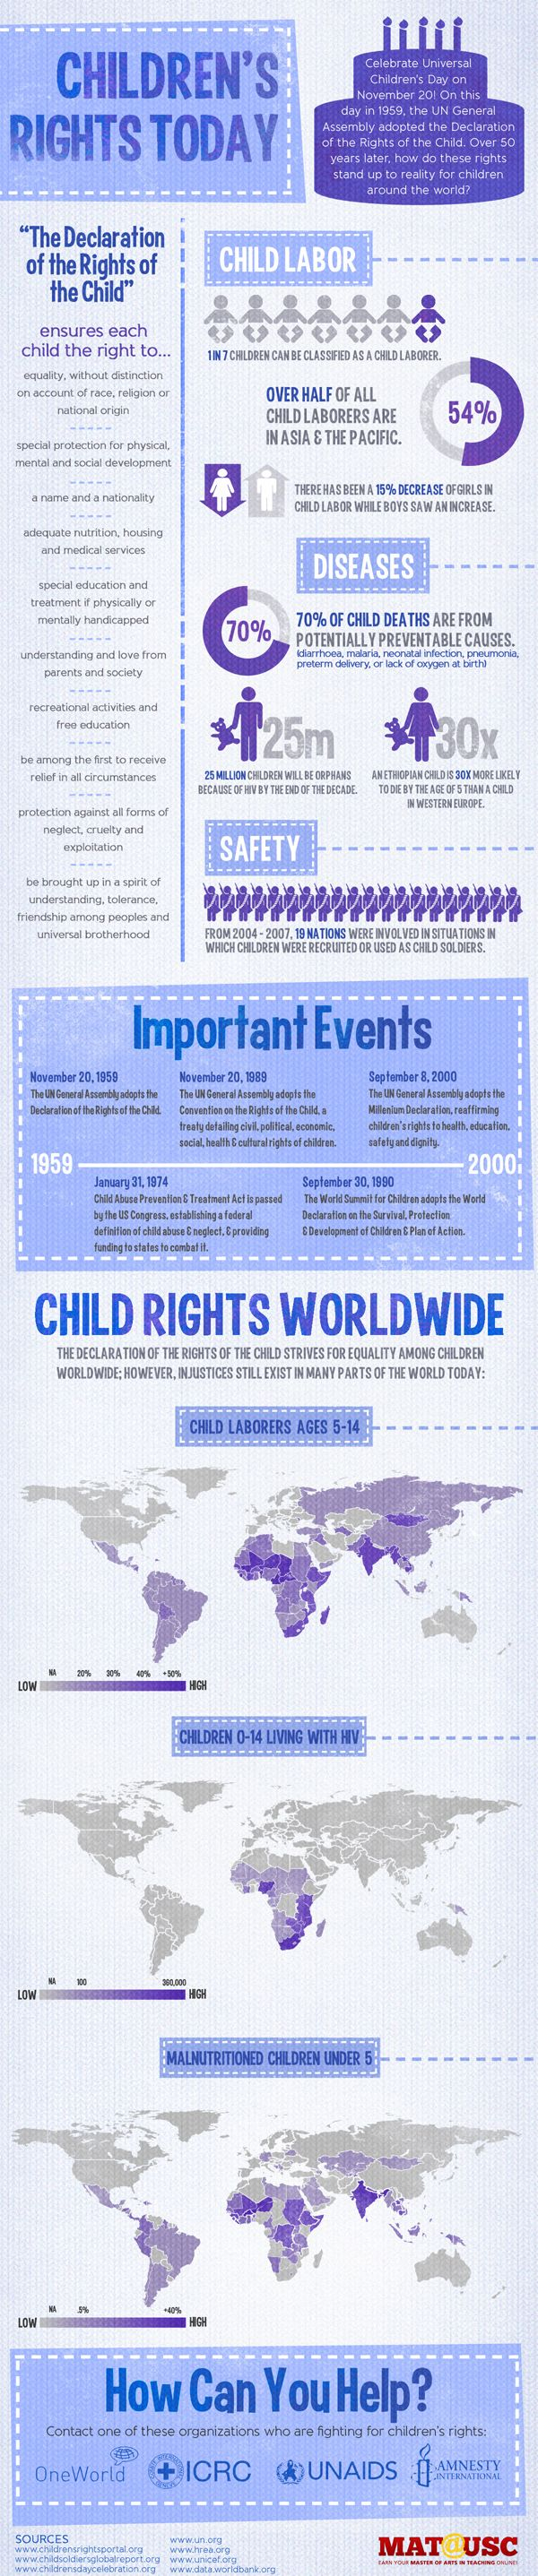 Children's Rights Today